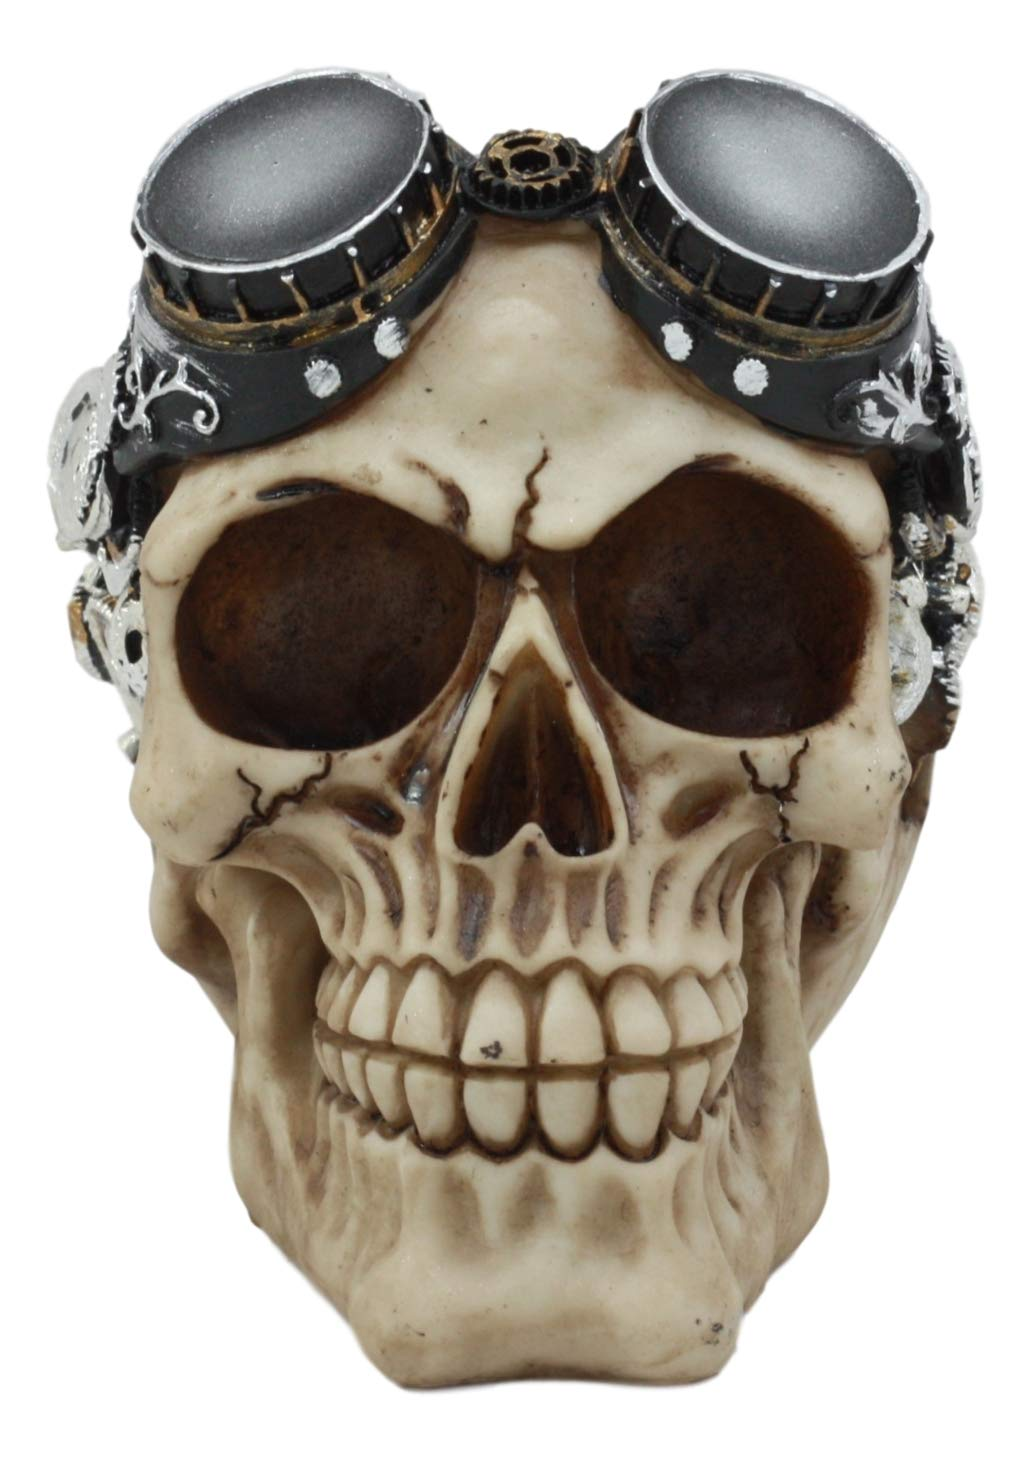 Ebros Steampunk Pilot Aviator Robotic Skull Statue Sci Fi Decor Figurine with Painted 3D Protruding Gearwork Mechanism Design 5